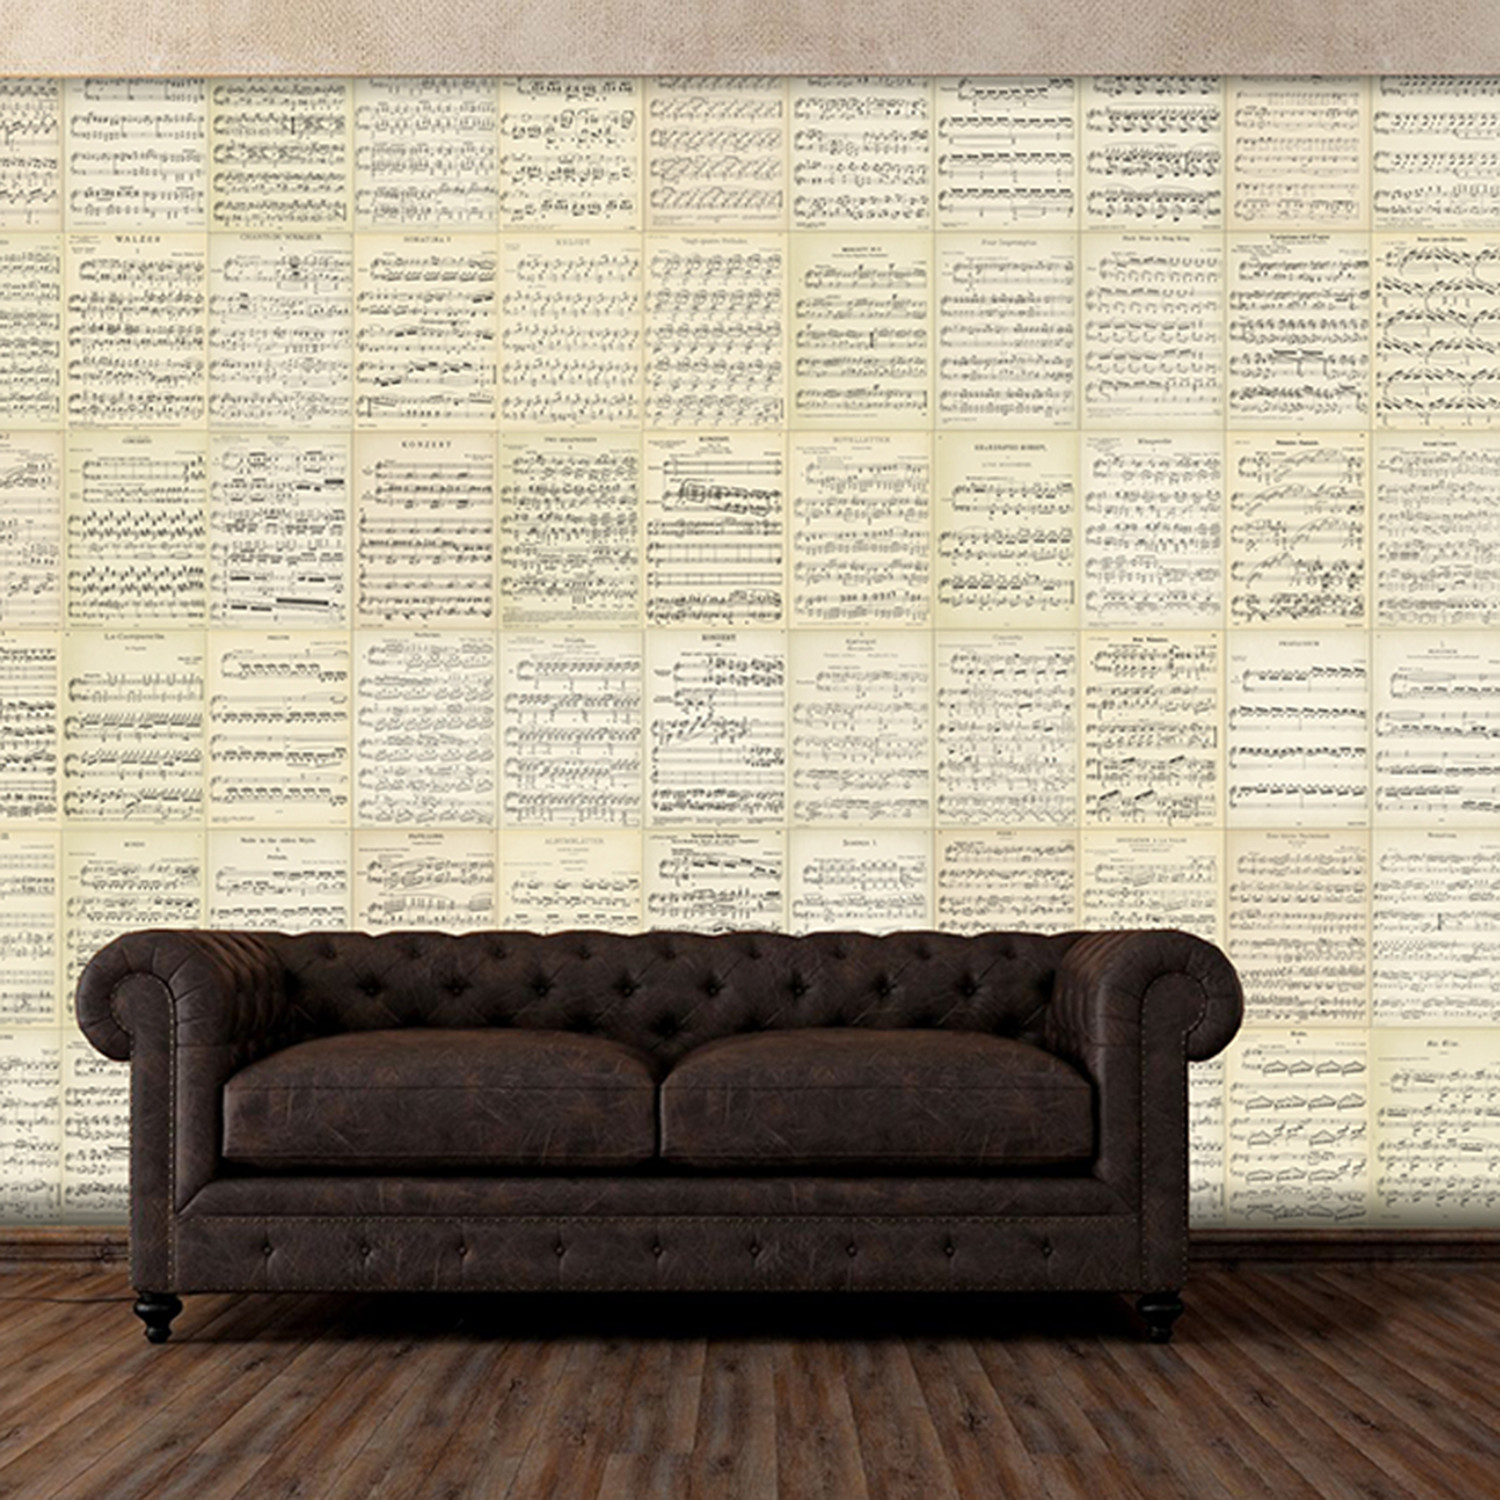 Creative collage music sheets 1 wall murals touch for 8 sheet giant wall mural